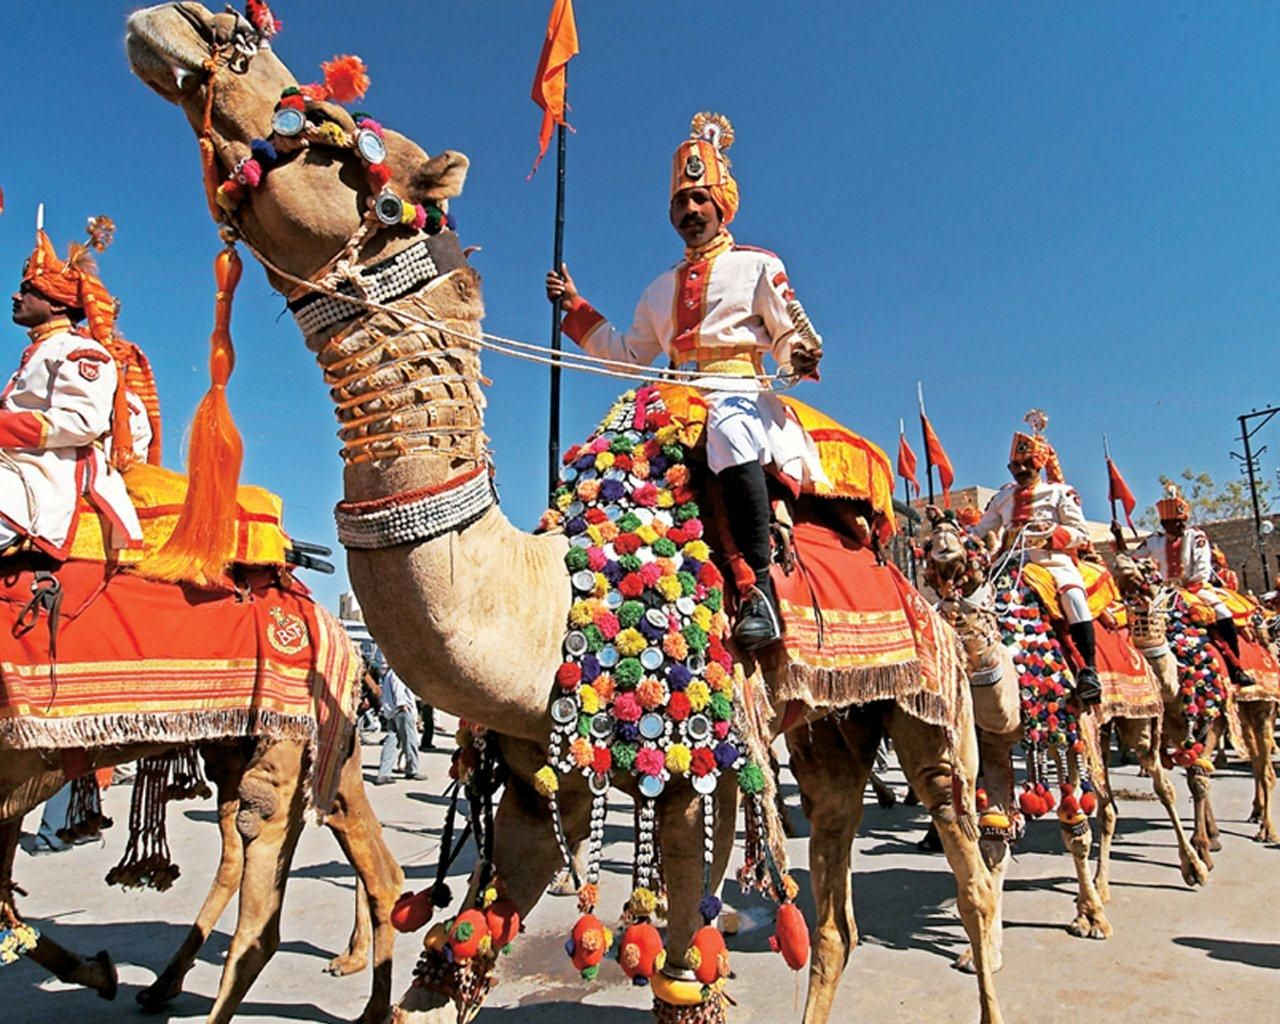 Pin on India Is... The Pushkar Festival